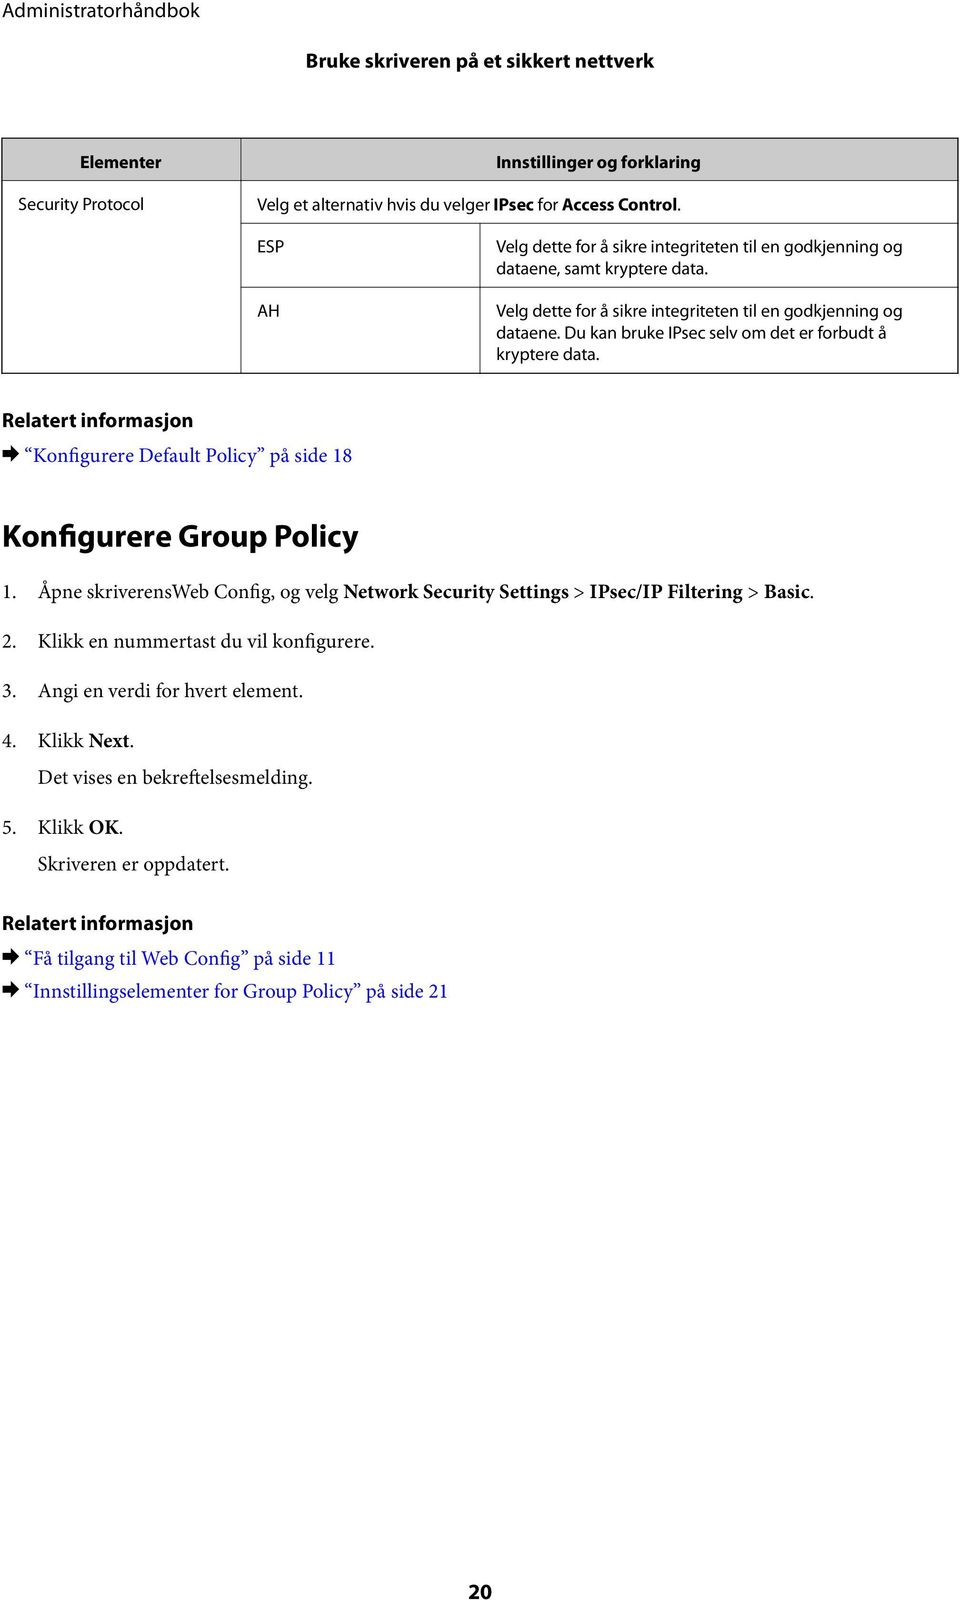 & Konfigurere Default Policy på side 18 Konfigurere Group Policy 1. Åpne skriverensweb Config, og velg Network Security Settings > IPsec/IP Filtering > Basic. 2.